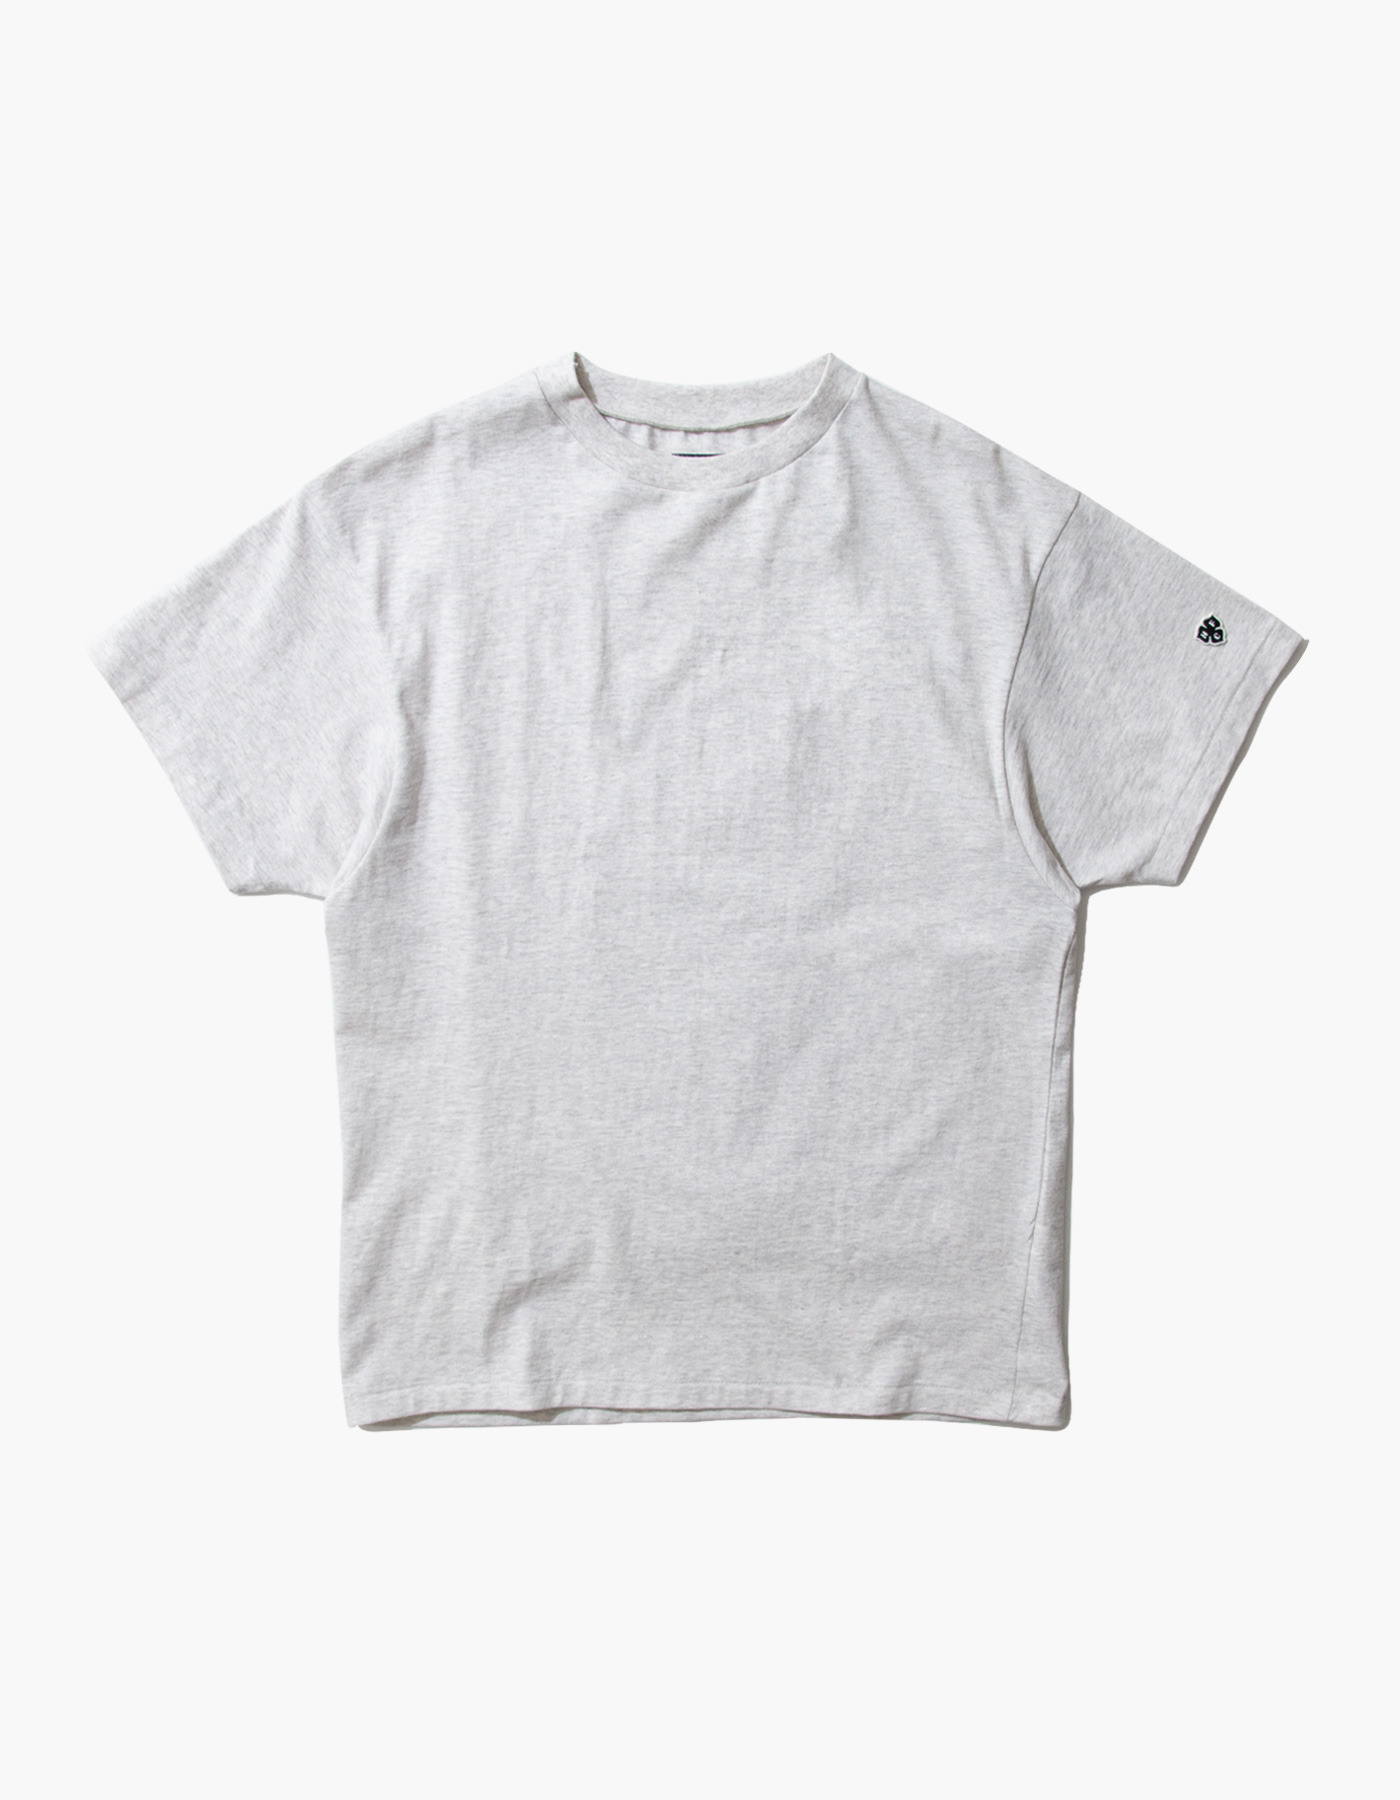 ACS COMPACT YARN T-SHIRTS / M.GREY(1%)